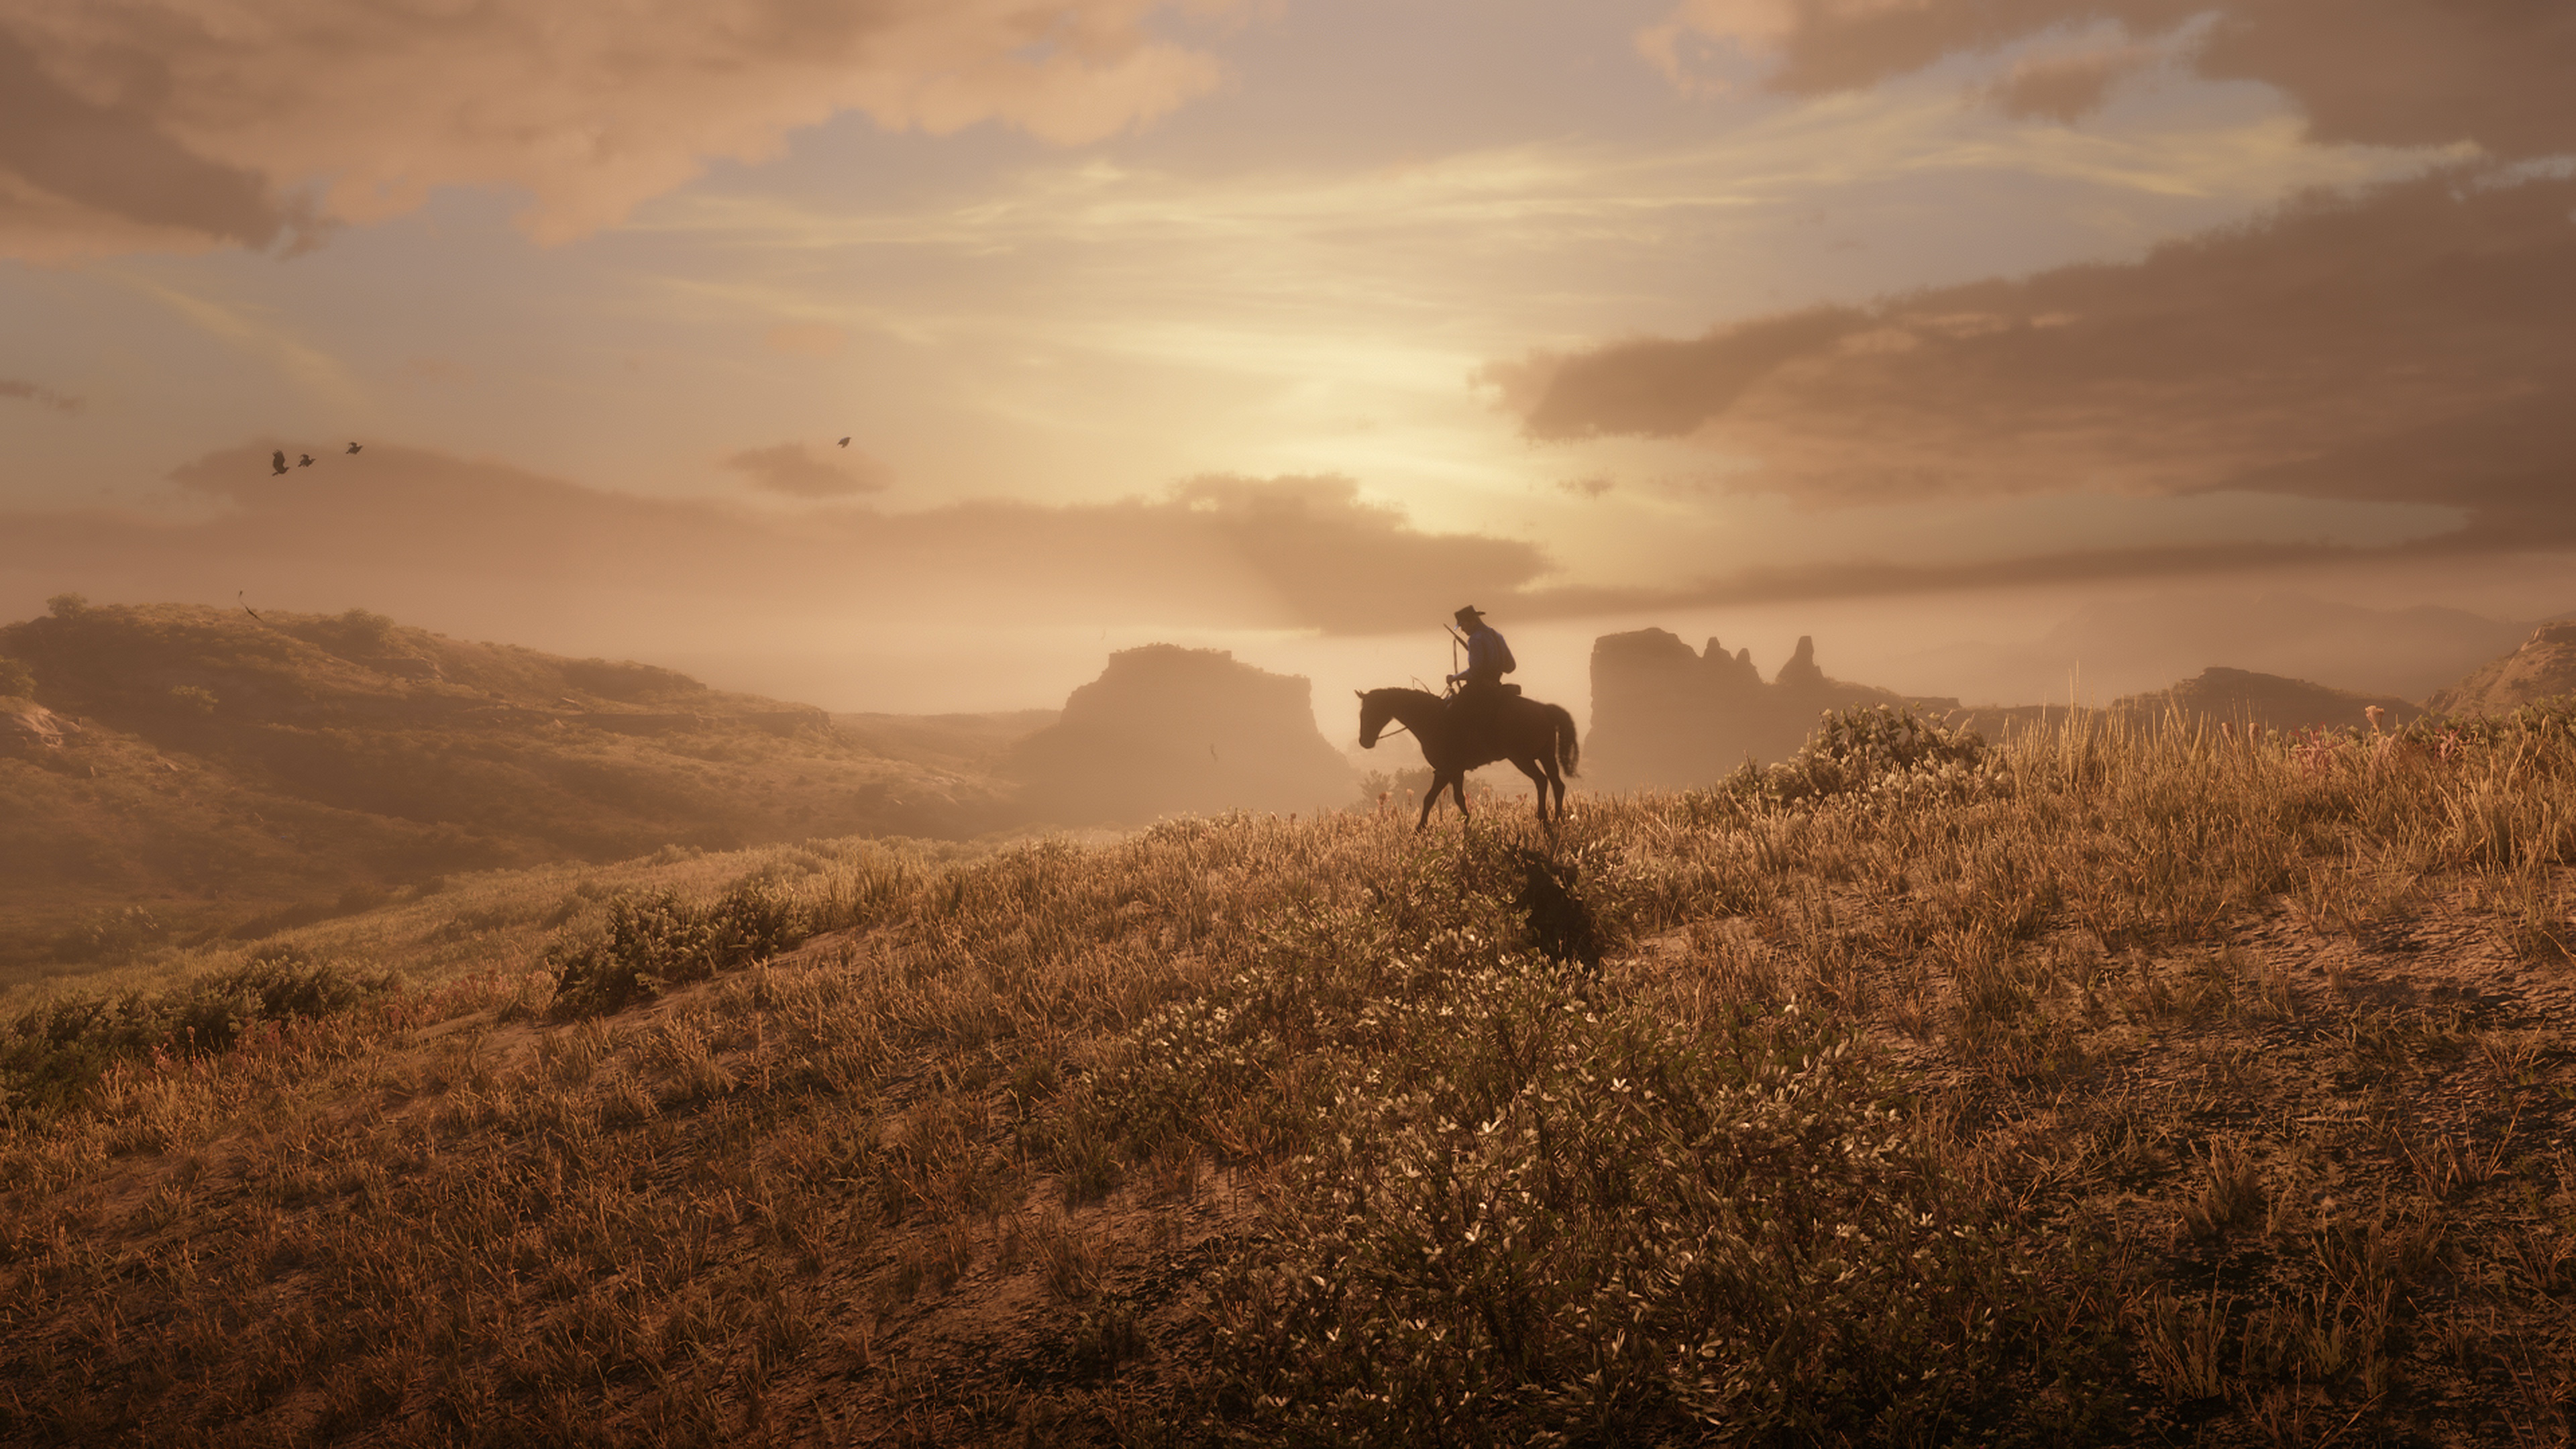 Red Dead Redemption 2 4k Wallpaper: Red Dead Redemption 2 Xbox One 4k, HD Games, 4k Wallpapers